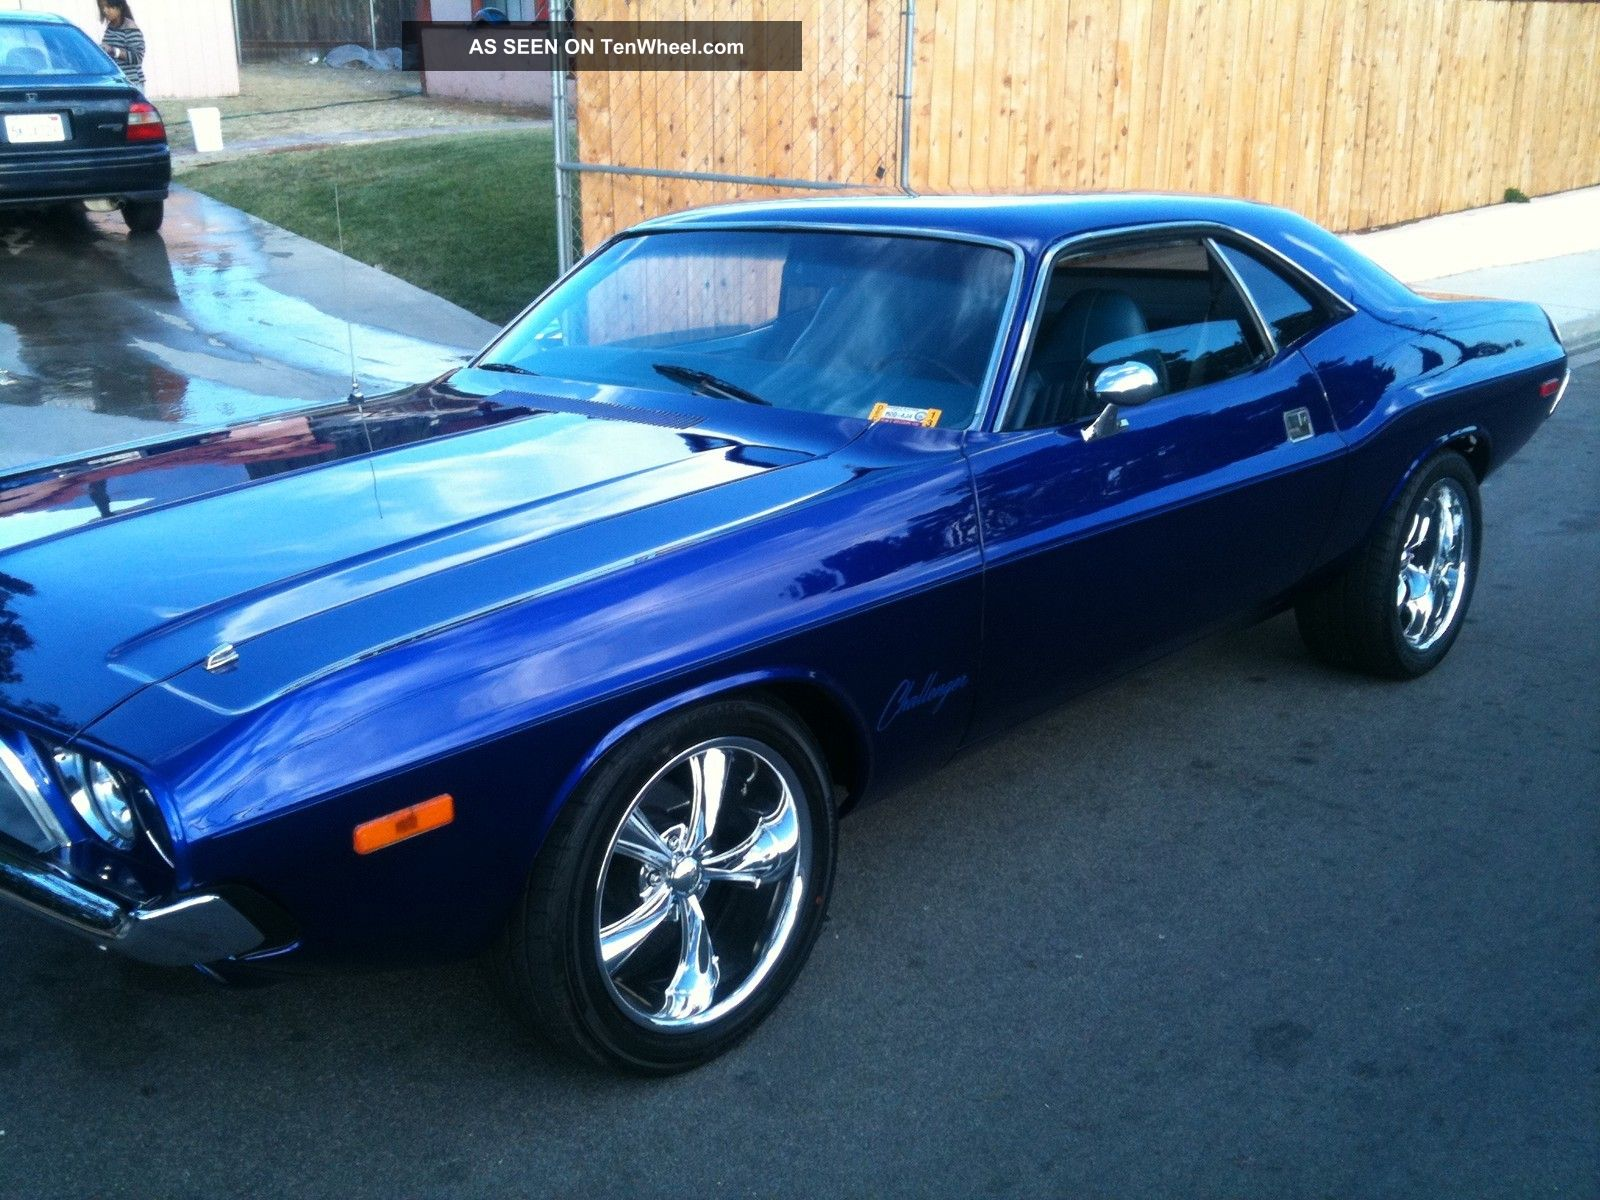 1st Generation Dodge Challenger Muscle Car 1974